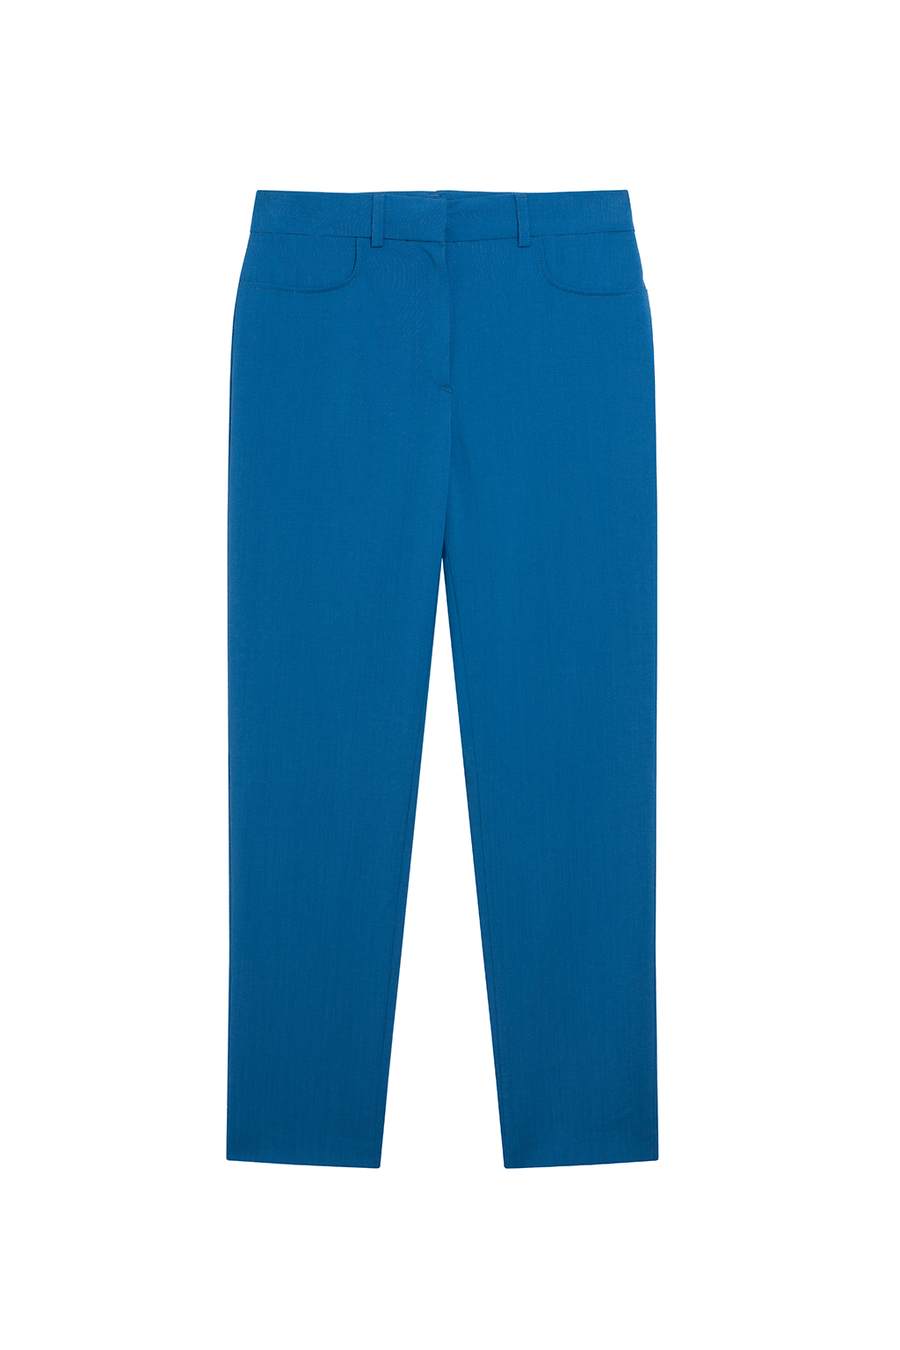 Pantalon tailleur New-York Bleu Royal